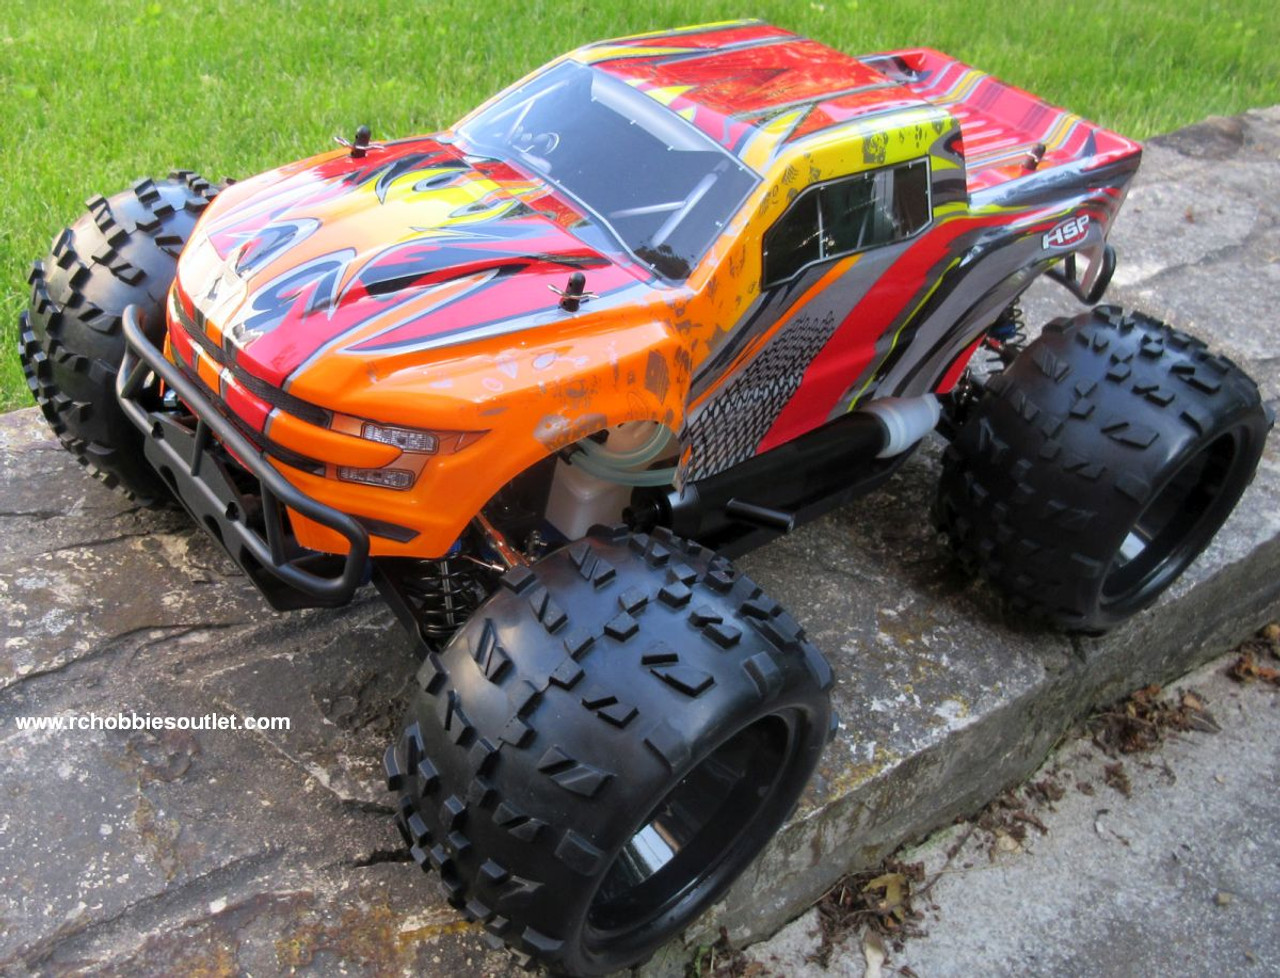 RC Nitro RC Truck 1/8 Scale  Savagery 4.25cc Engine  4WD  2.4G 97092